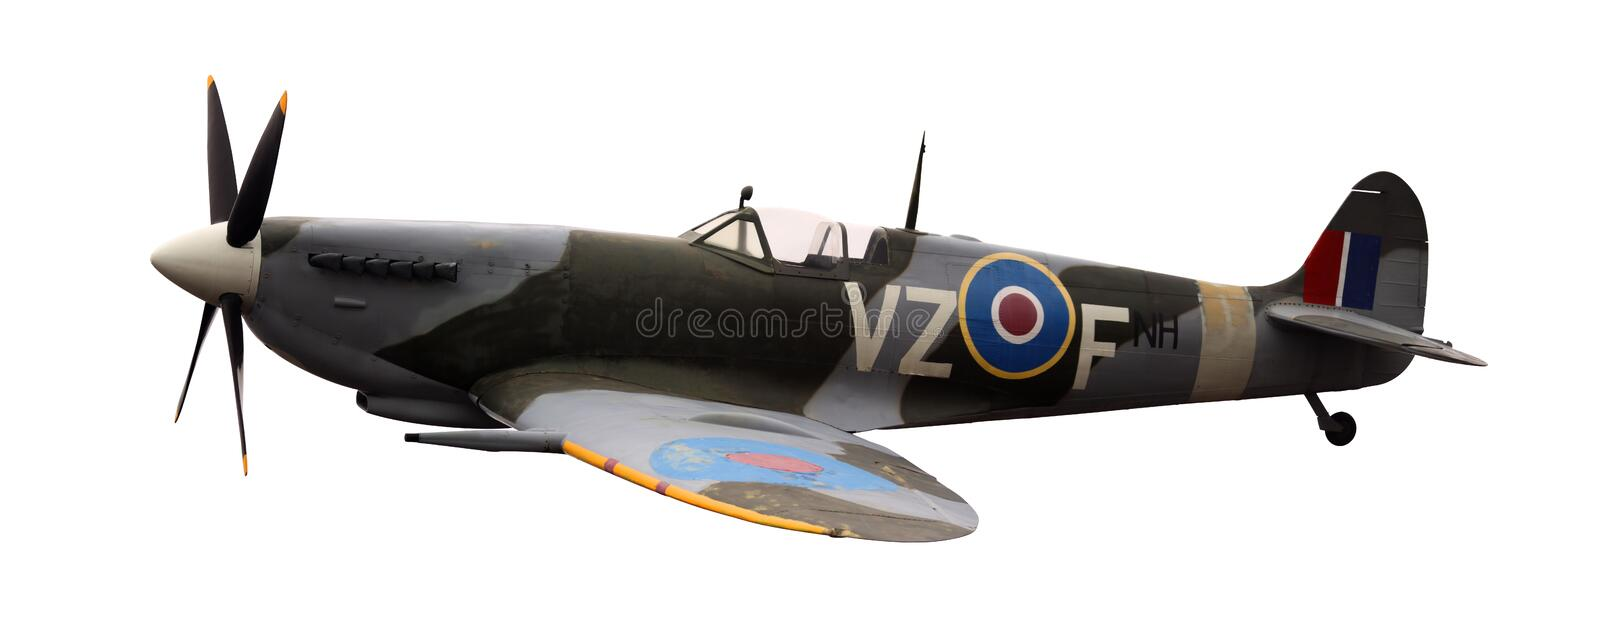 spitfire image stock